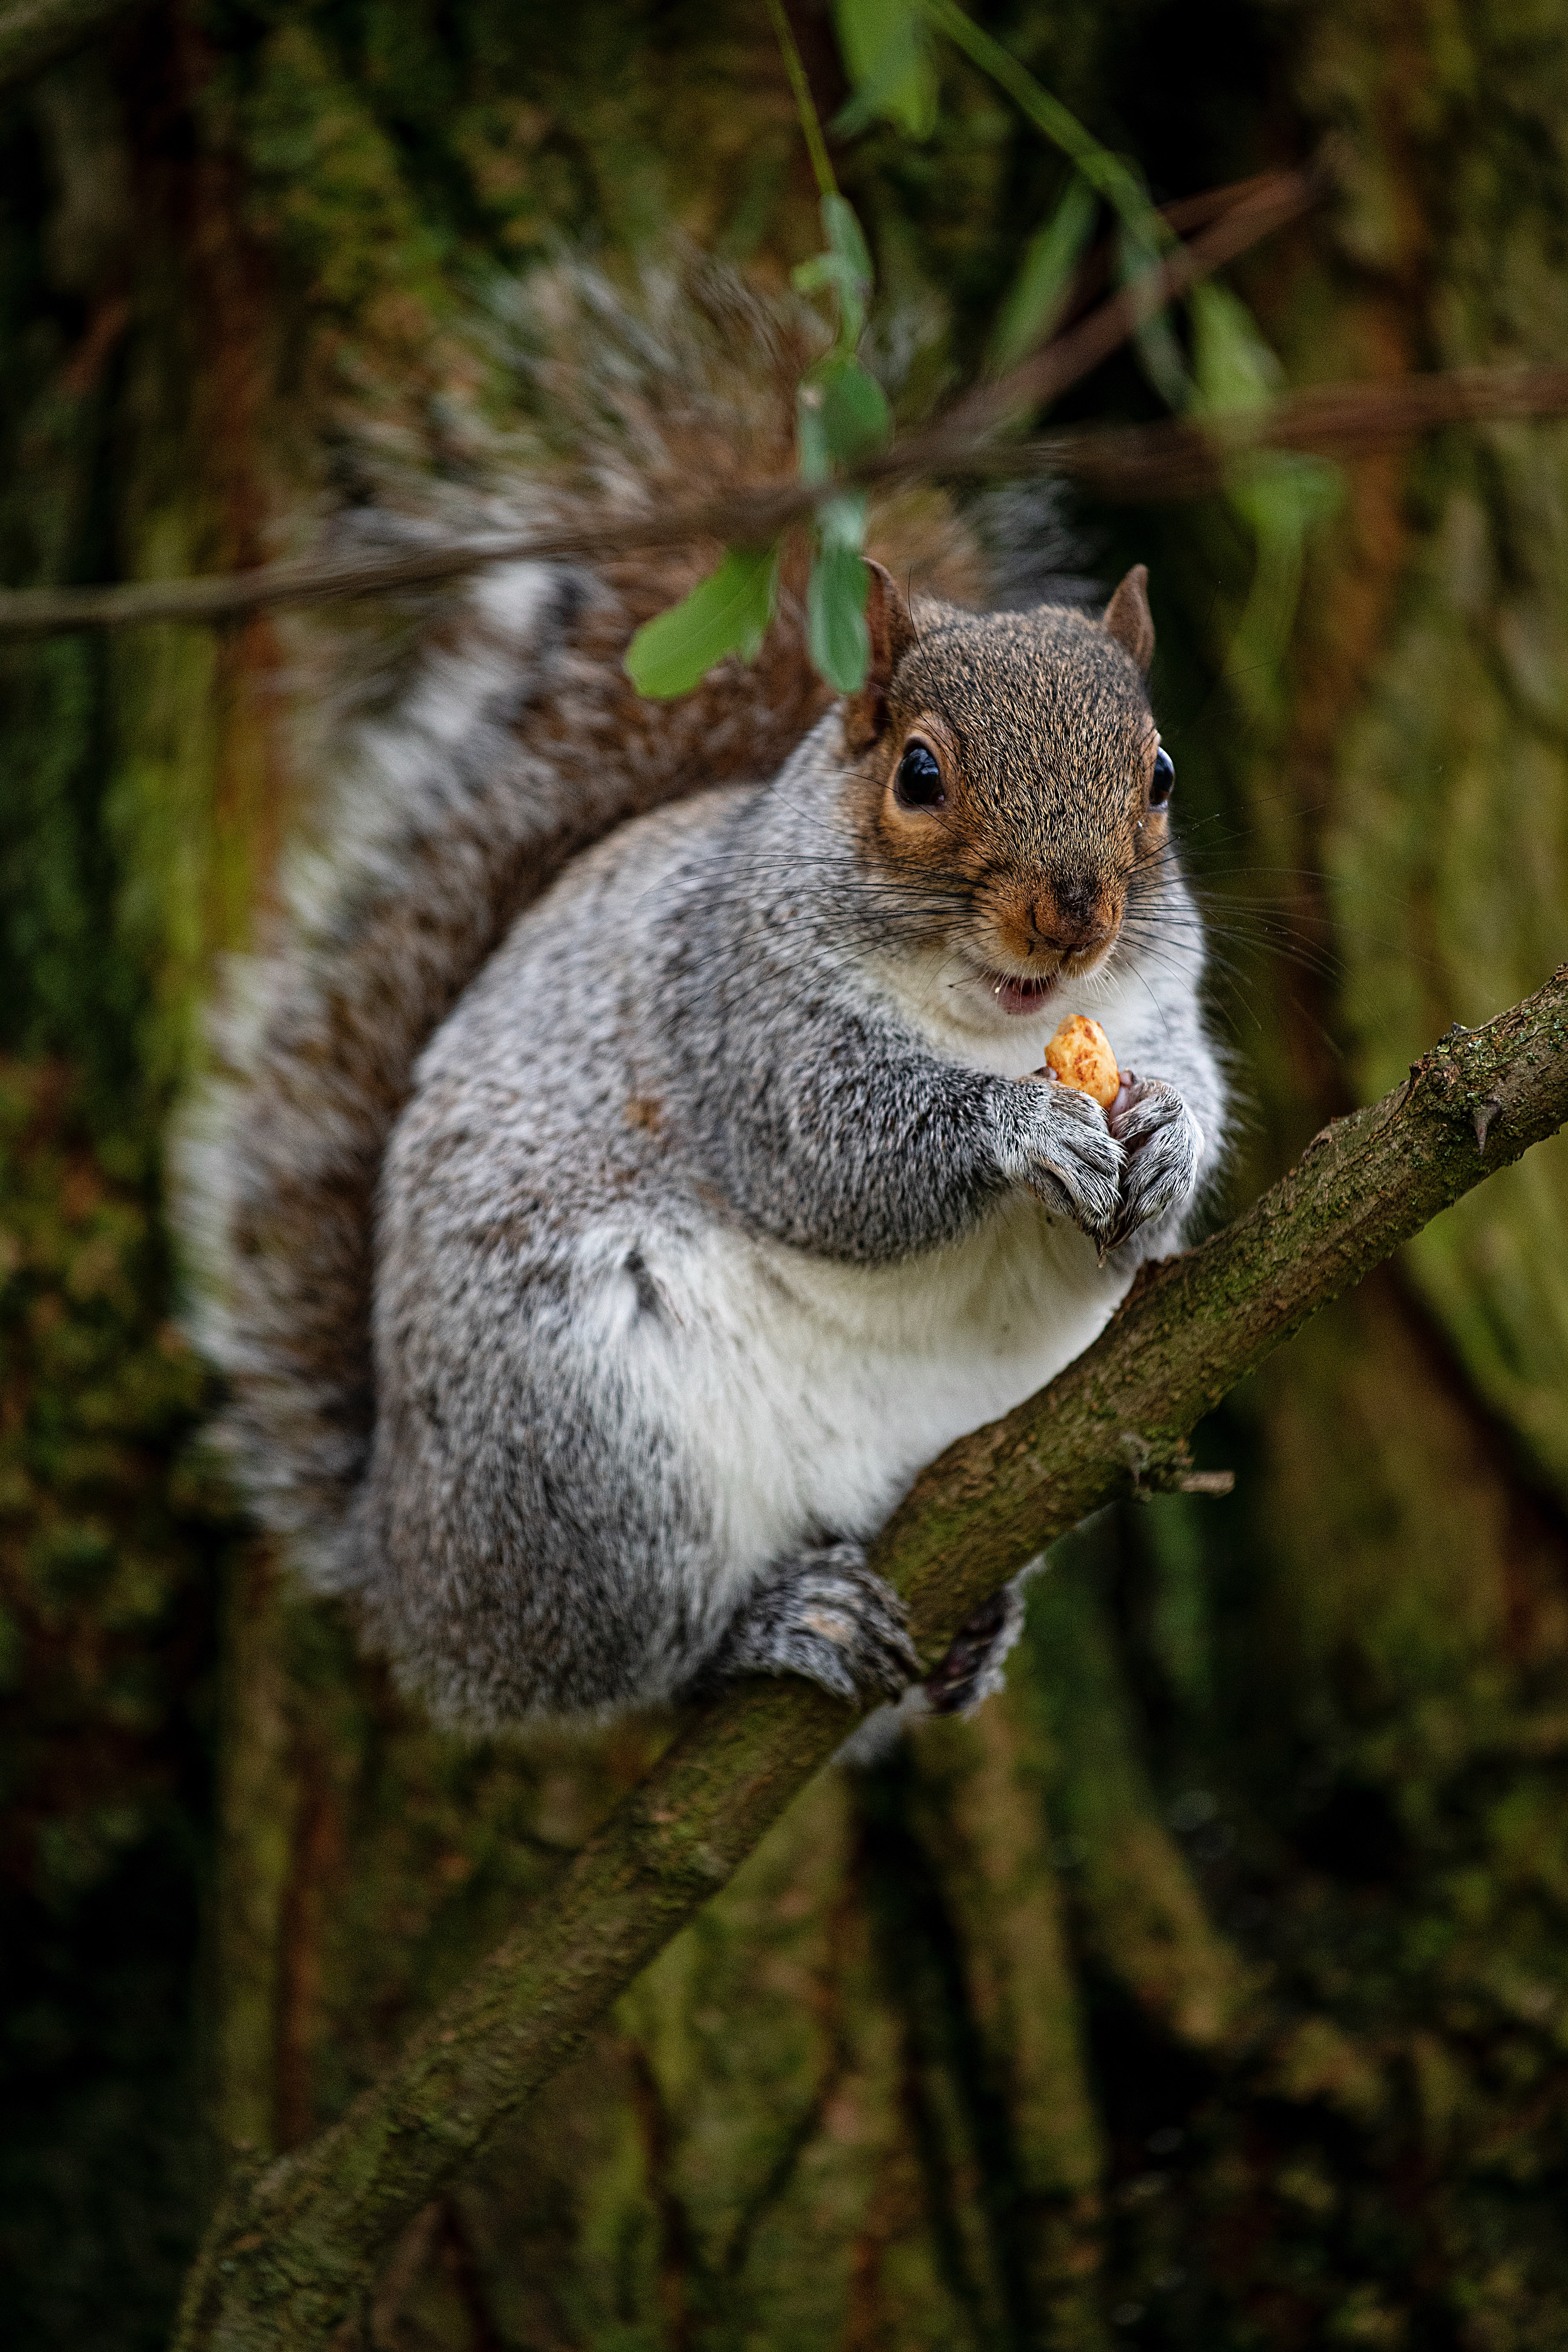 98571 download wallpaper Animals, Squirrel, Rodent, Nice, Sweetheart, Nut, Wood, Tree screensavers and pictures for free